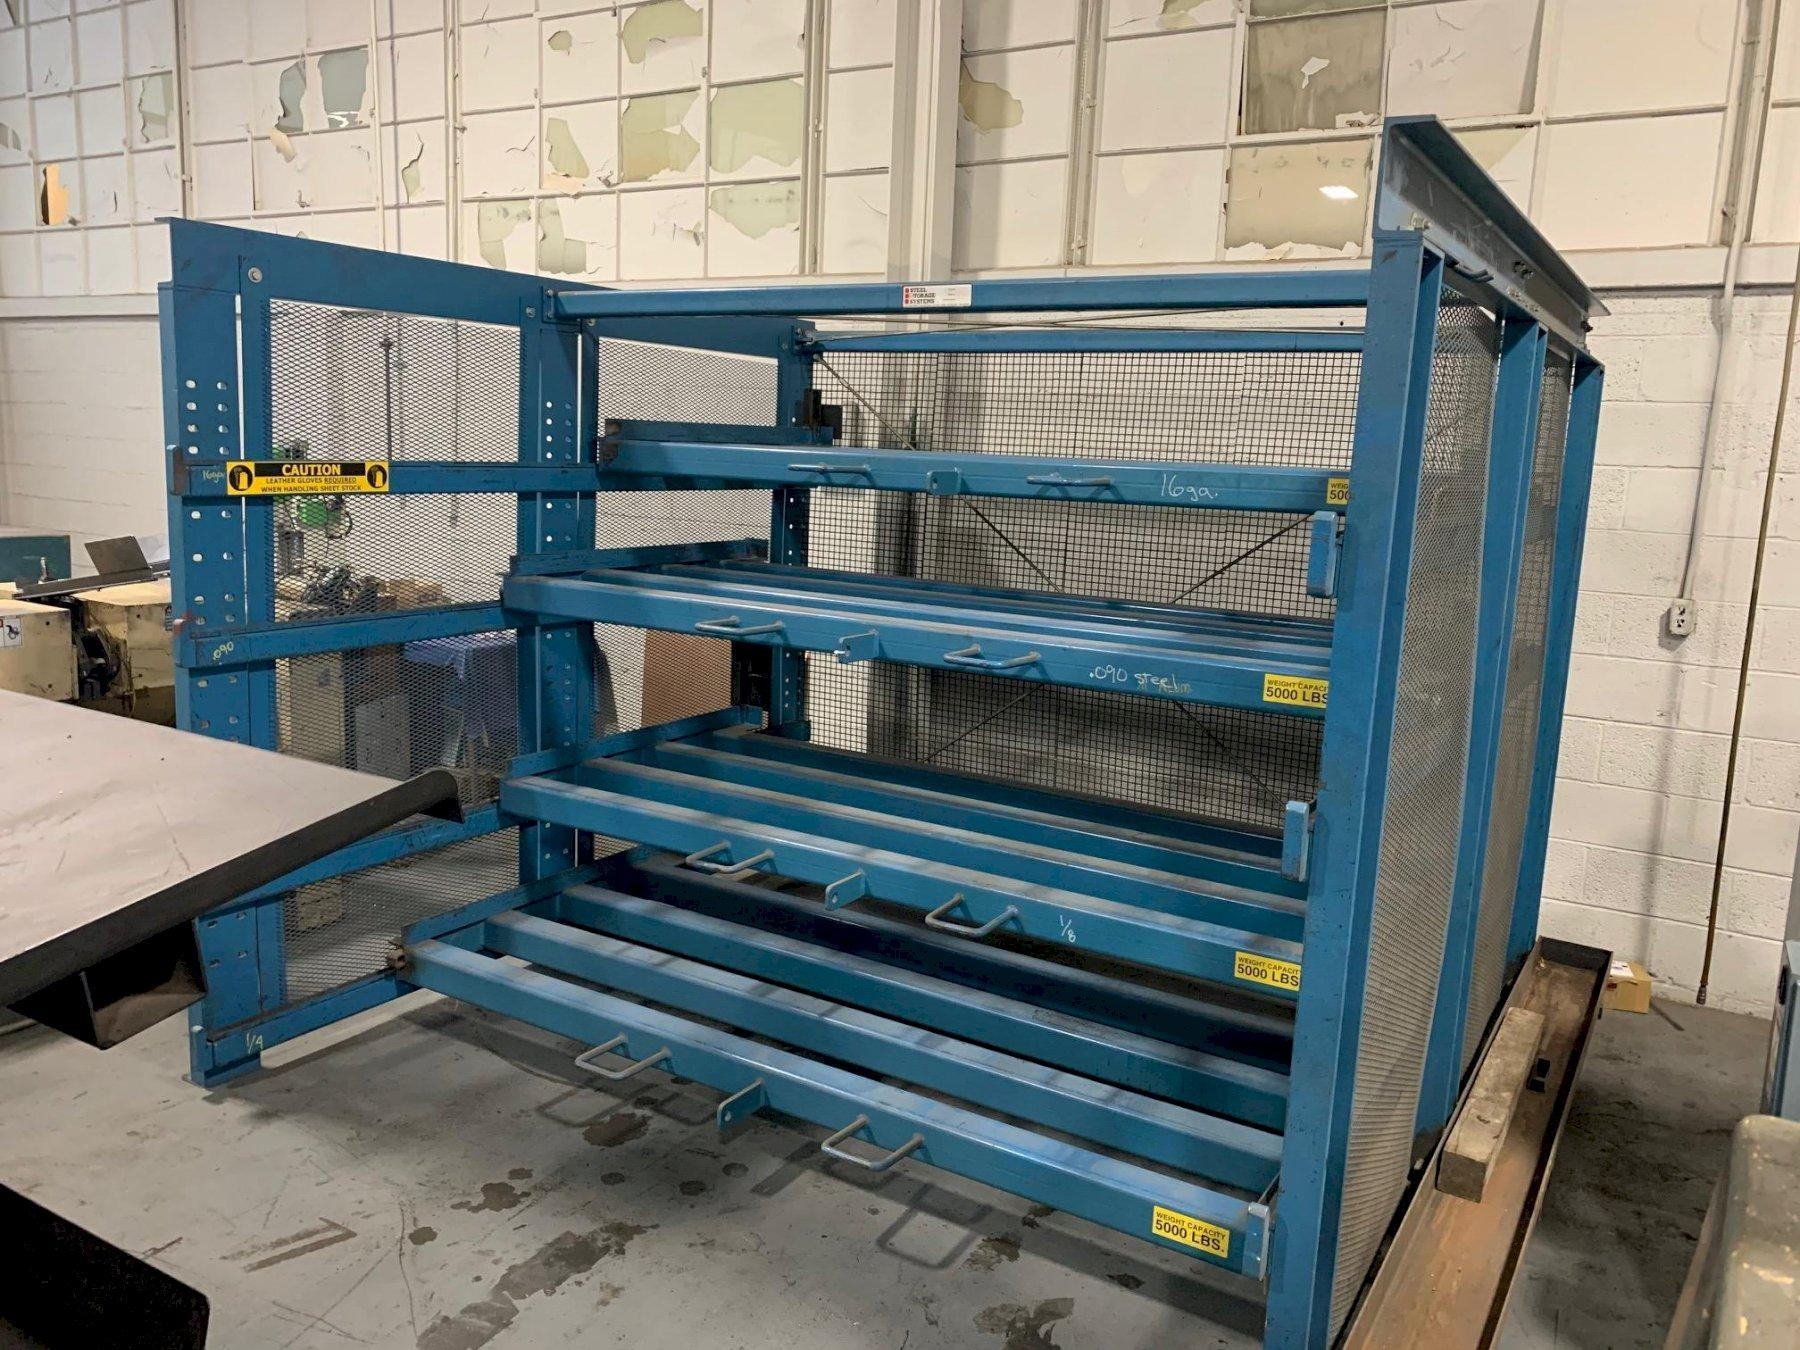 USED STEEL STORAGE SYSTEMS ROLL OUT MATERIAL STORAGE RACK SYSTEM, STOCK NO 10680, YEAR: 2000